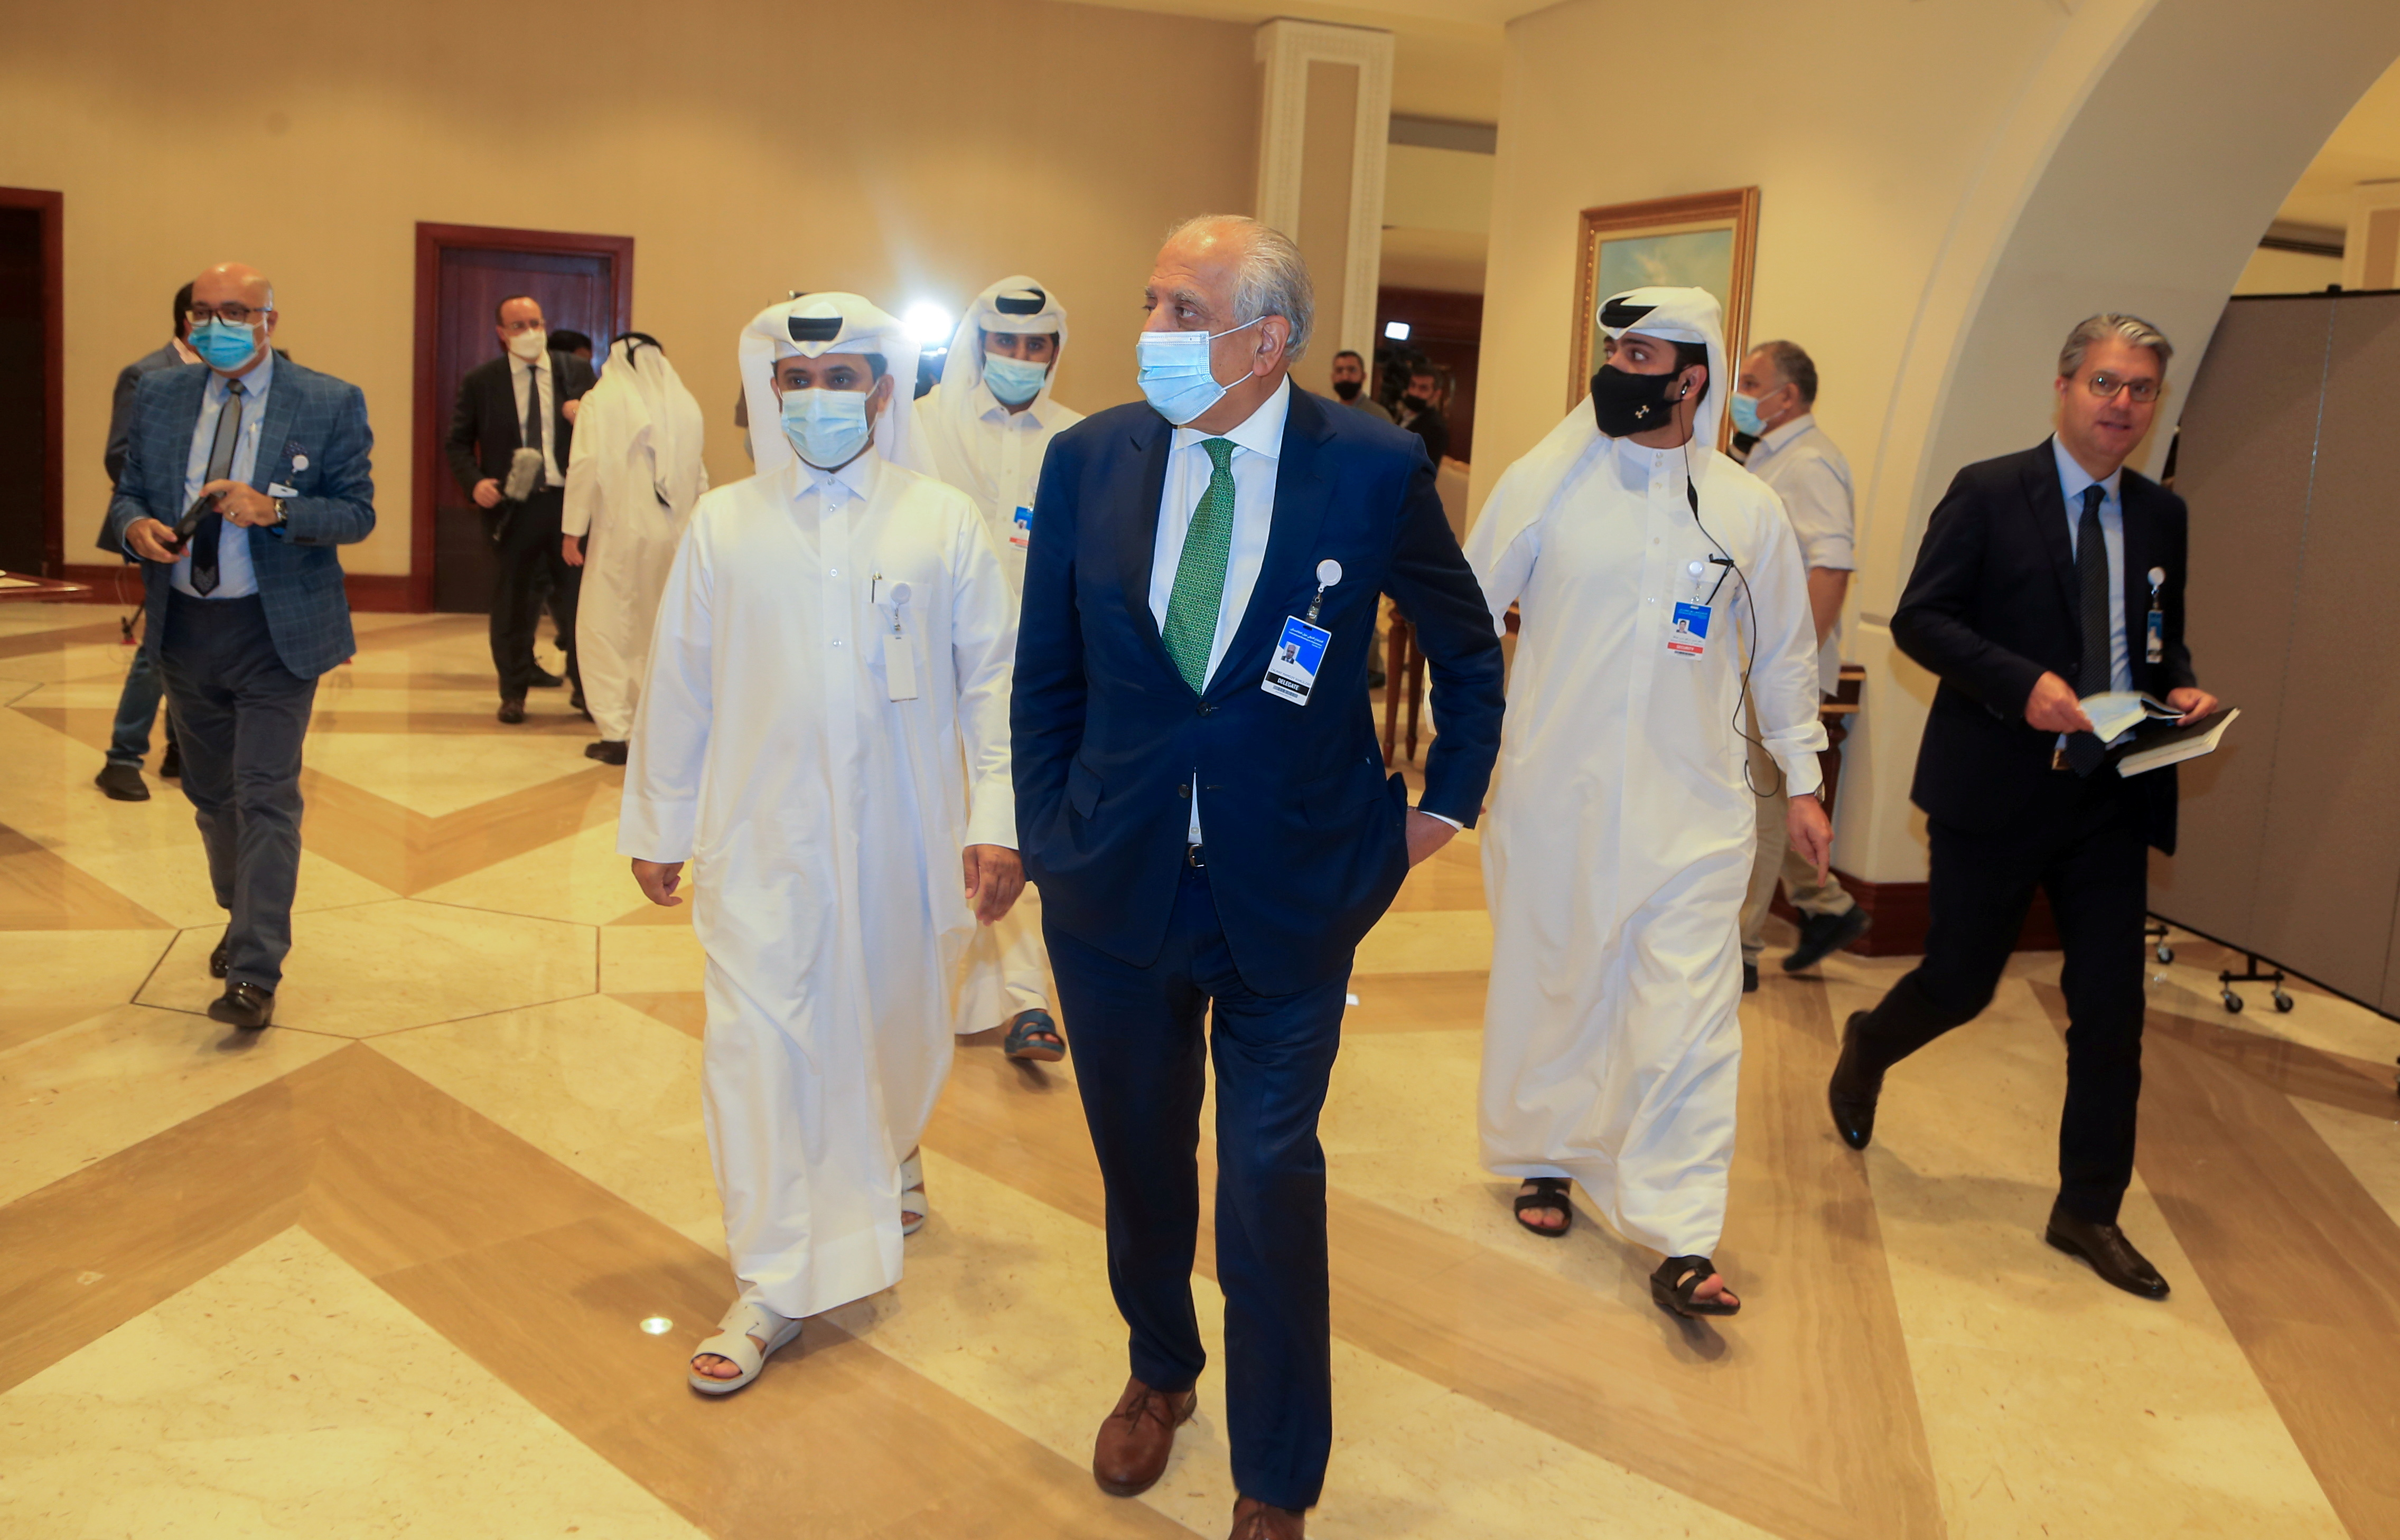 Zalmay Khalilzad, U.S. special envoy for Afghanistan, arrives for Afghan peace talks in Doha, Qatar, August 12, 2021. REUTERS/Hussein Sayed